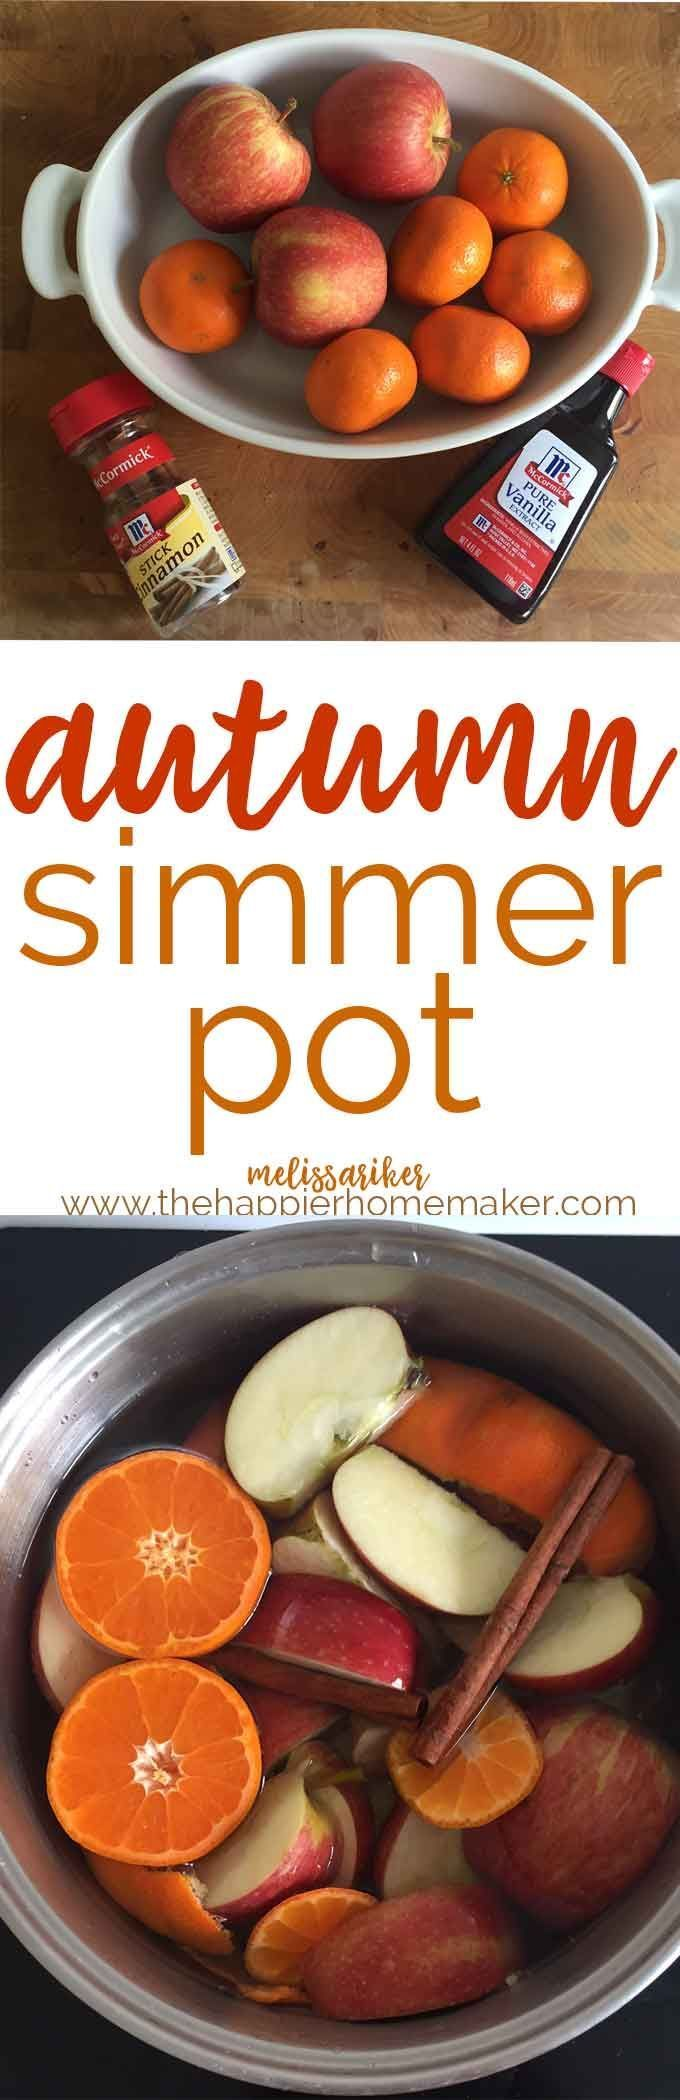 This Autumn Simmer Pot will make your home smell just amazing! Get this brewin' for a festive fall party.